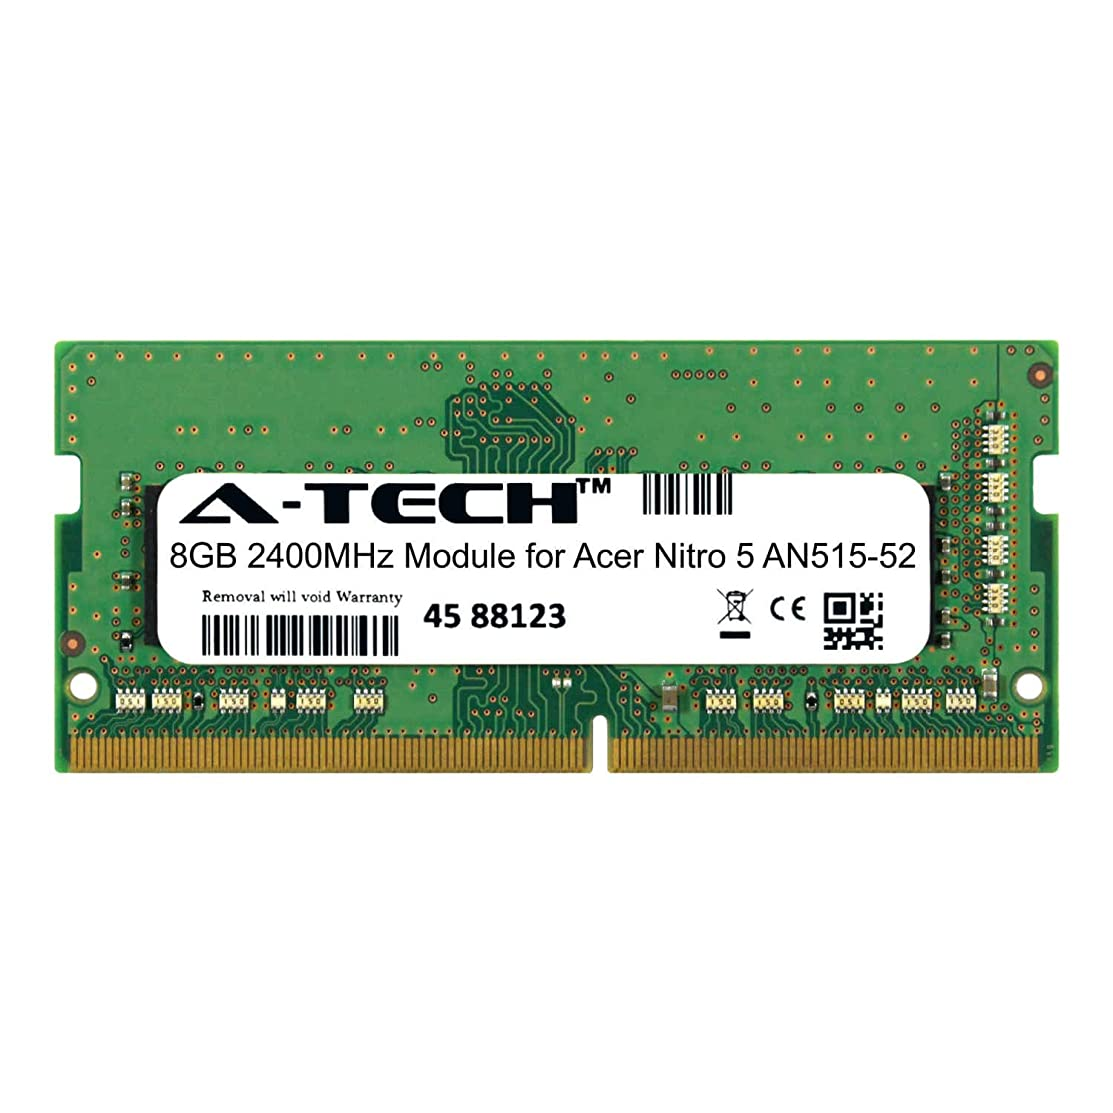 A-Tech 8GB Module for Acer Nitro 5 AN515-52 Laptop & Notebook Compatible DDR4 2400Mhz Memory Ram (ATMS279638A25827X1)